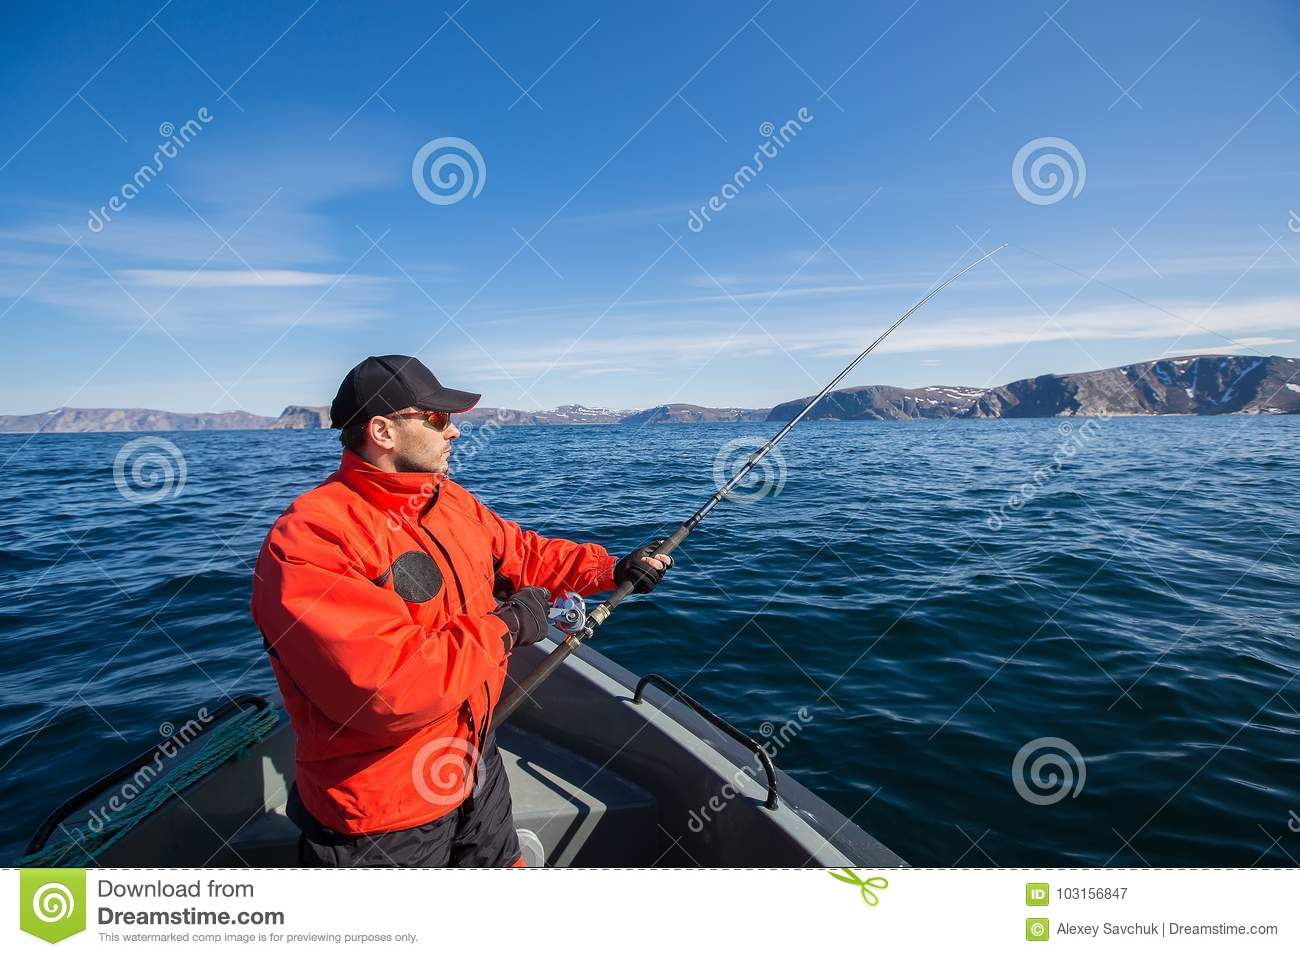 Fisherman athlete with a fishing rod in his hands. a boat. sea.